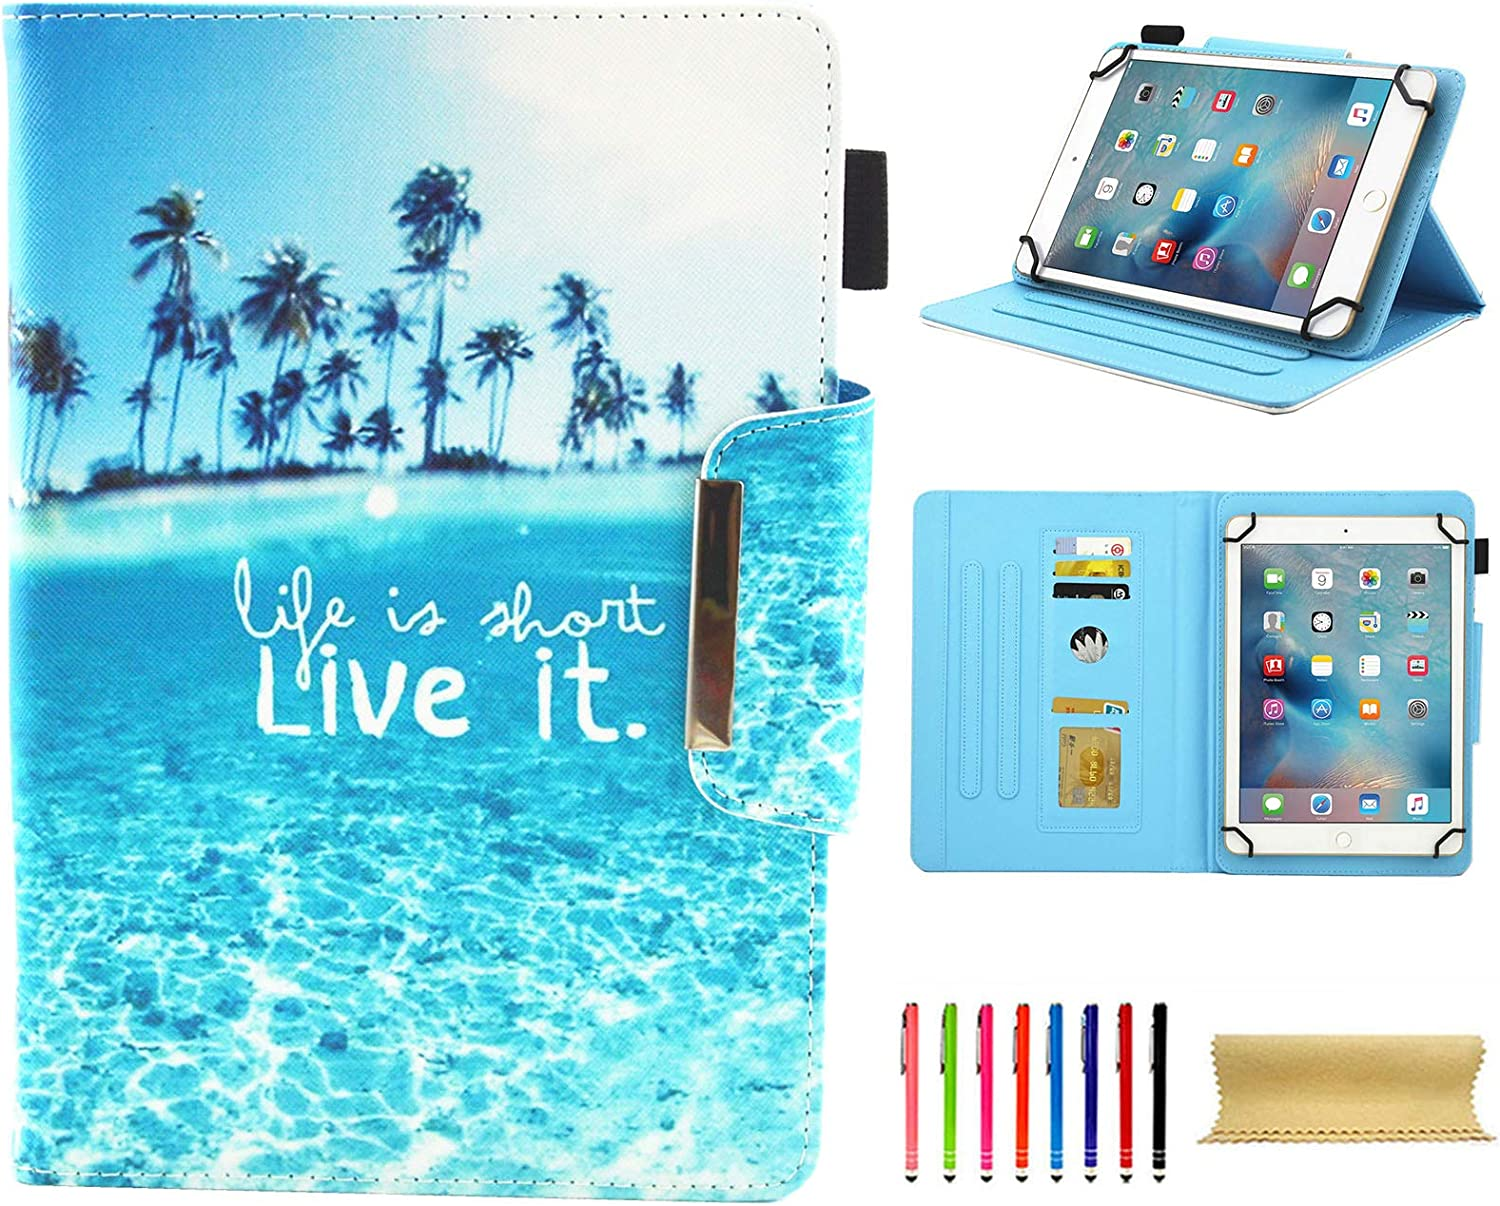 Universal Case for 7.0 Inch Tablet, Techcircle Slim PU Leather Stand Folio Wallet Case for Samsung Galaxy Tab E Lite, Acer Iconia One 7, Google/RCA and More 7-inch Android Tablet, Live It